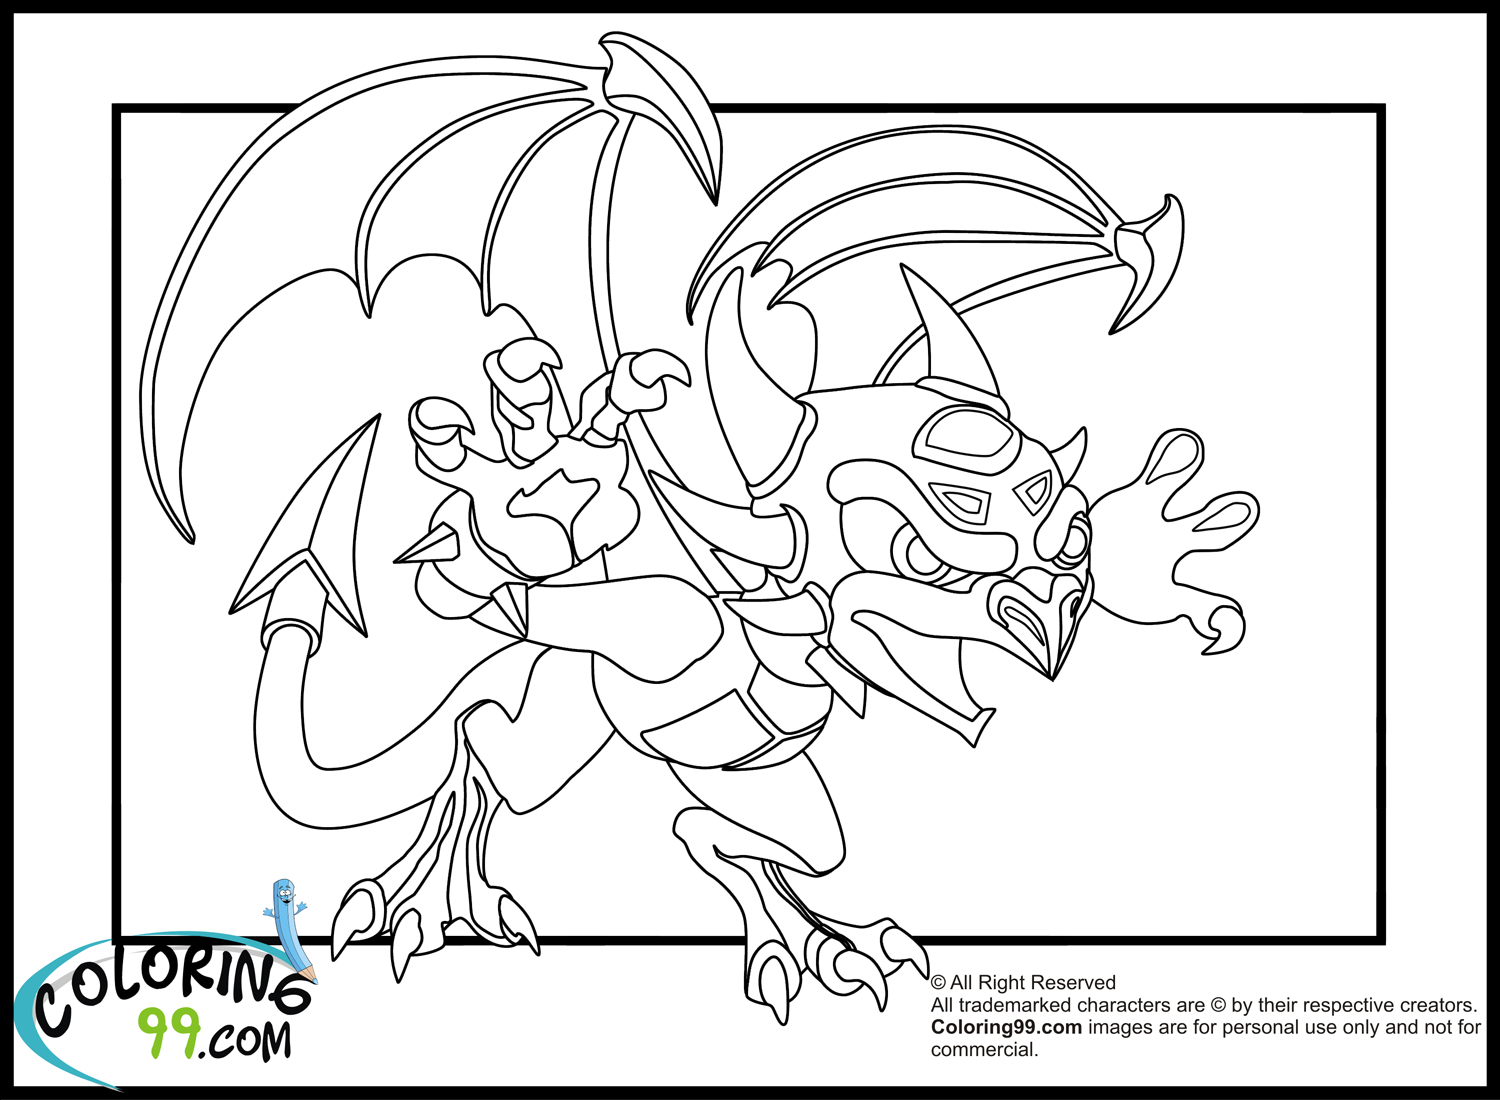 spyro and cynder coloring pages - photo#26